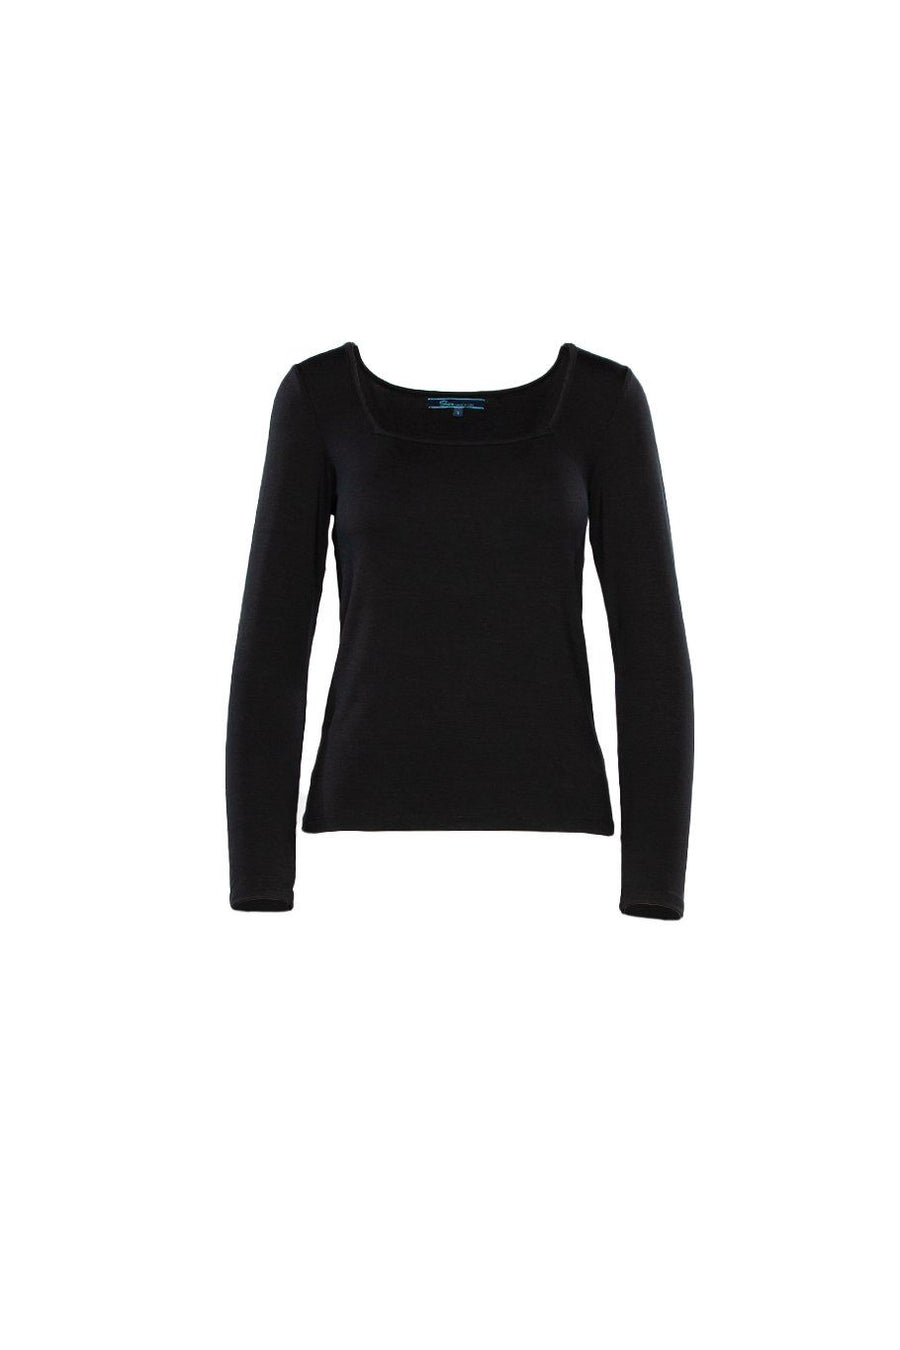 Square Neck Top - Black - Shore